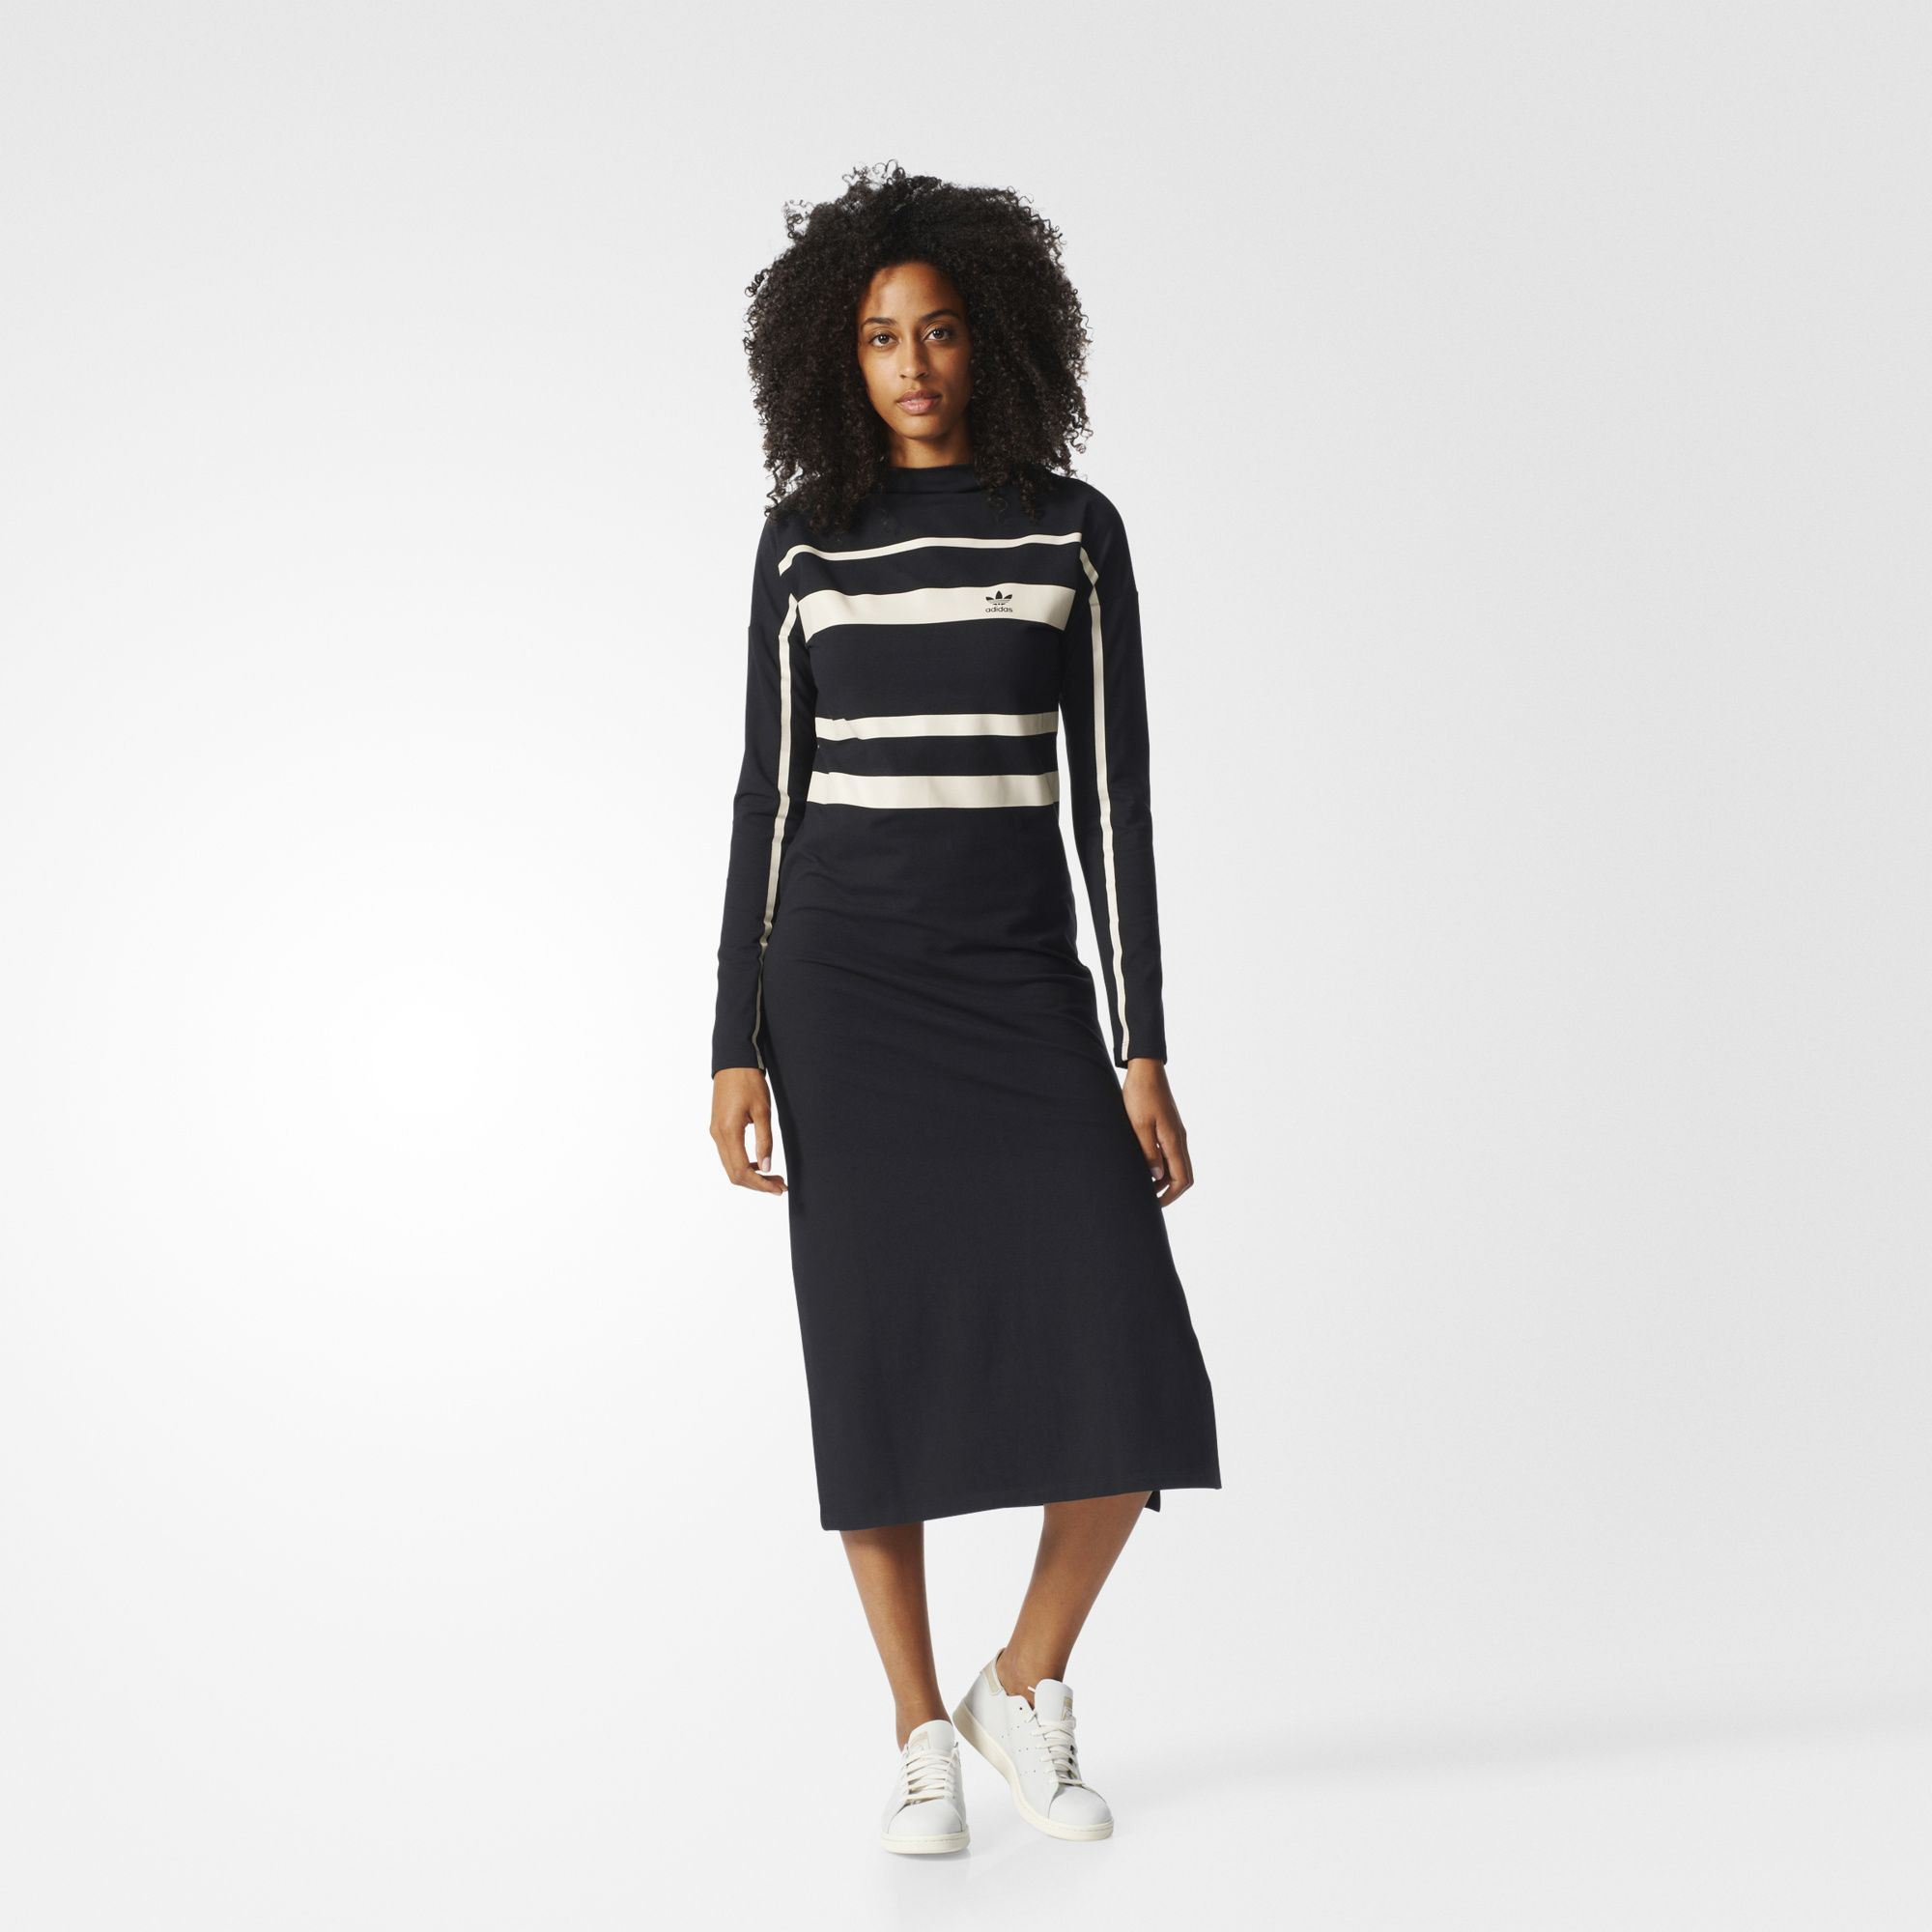 5b069e82fdc adidas Originals Womens 3 Stripe Long Trefoil Midi Dress Black BK5883  CLEARANCE. All sizes listed are UK. See sizing tab below for conversions.